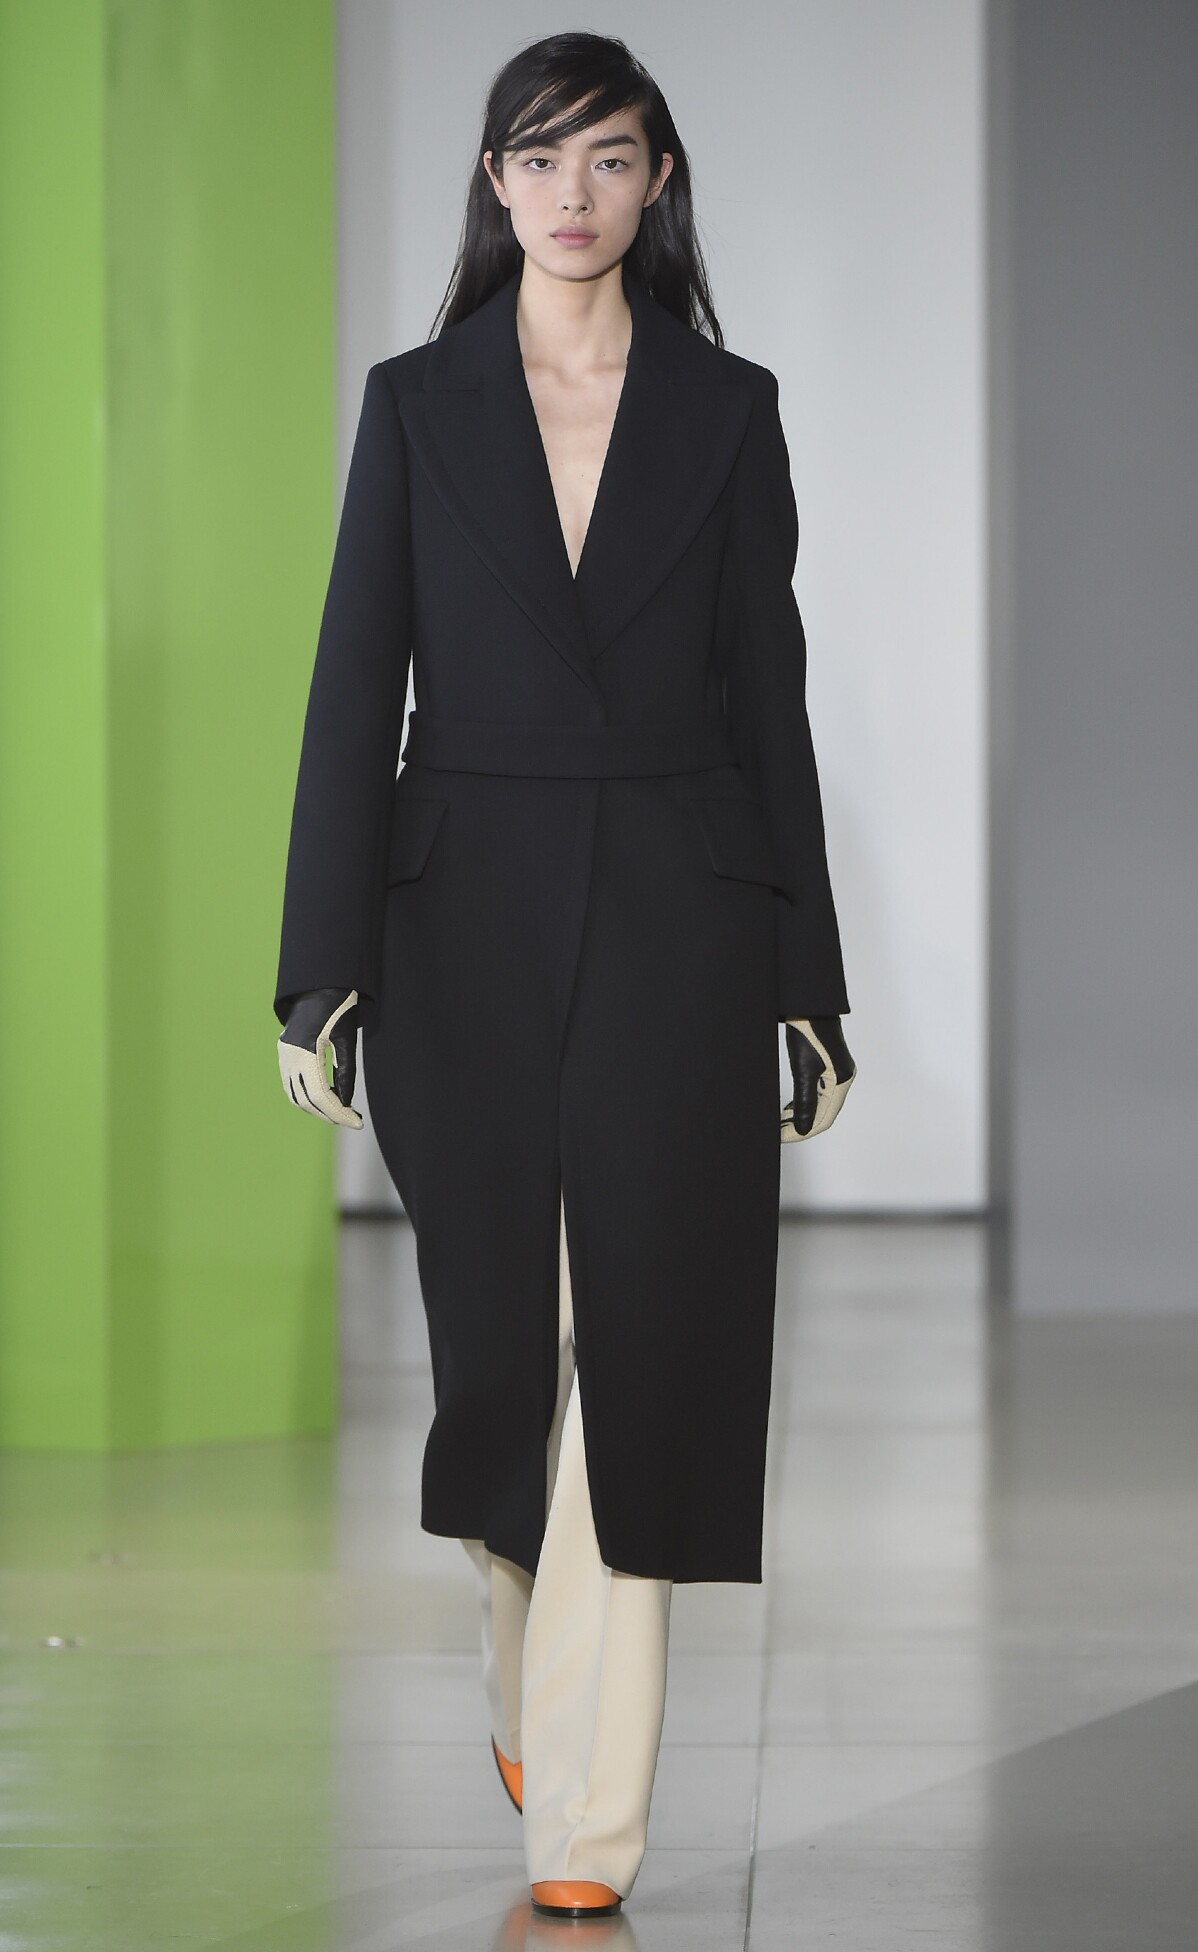 Jil Sander Collection Winter 2015 Catwalk